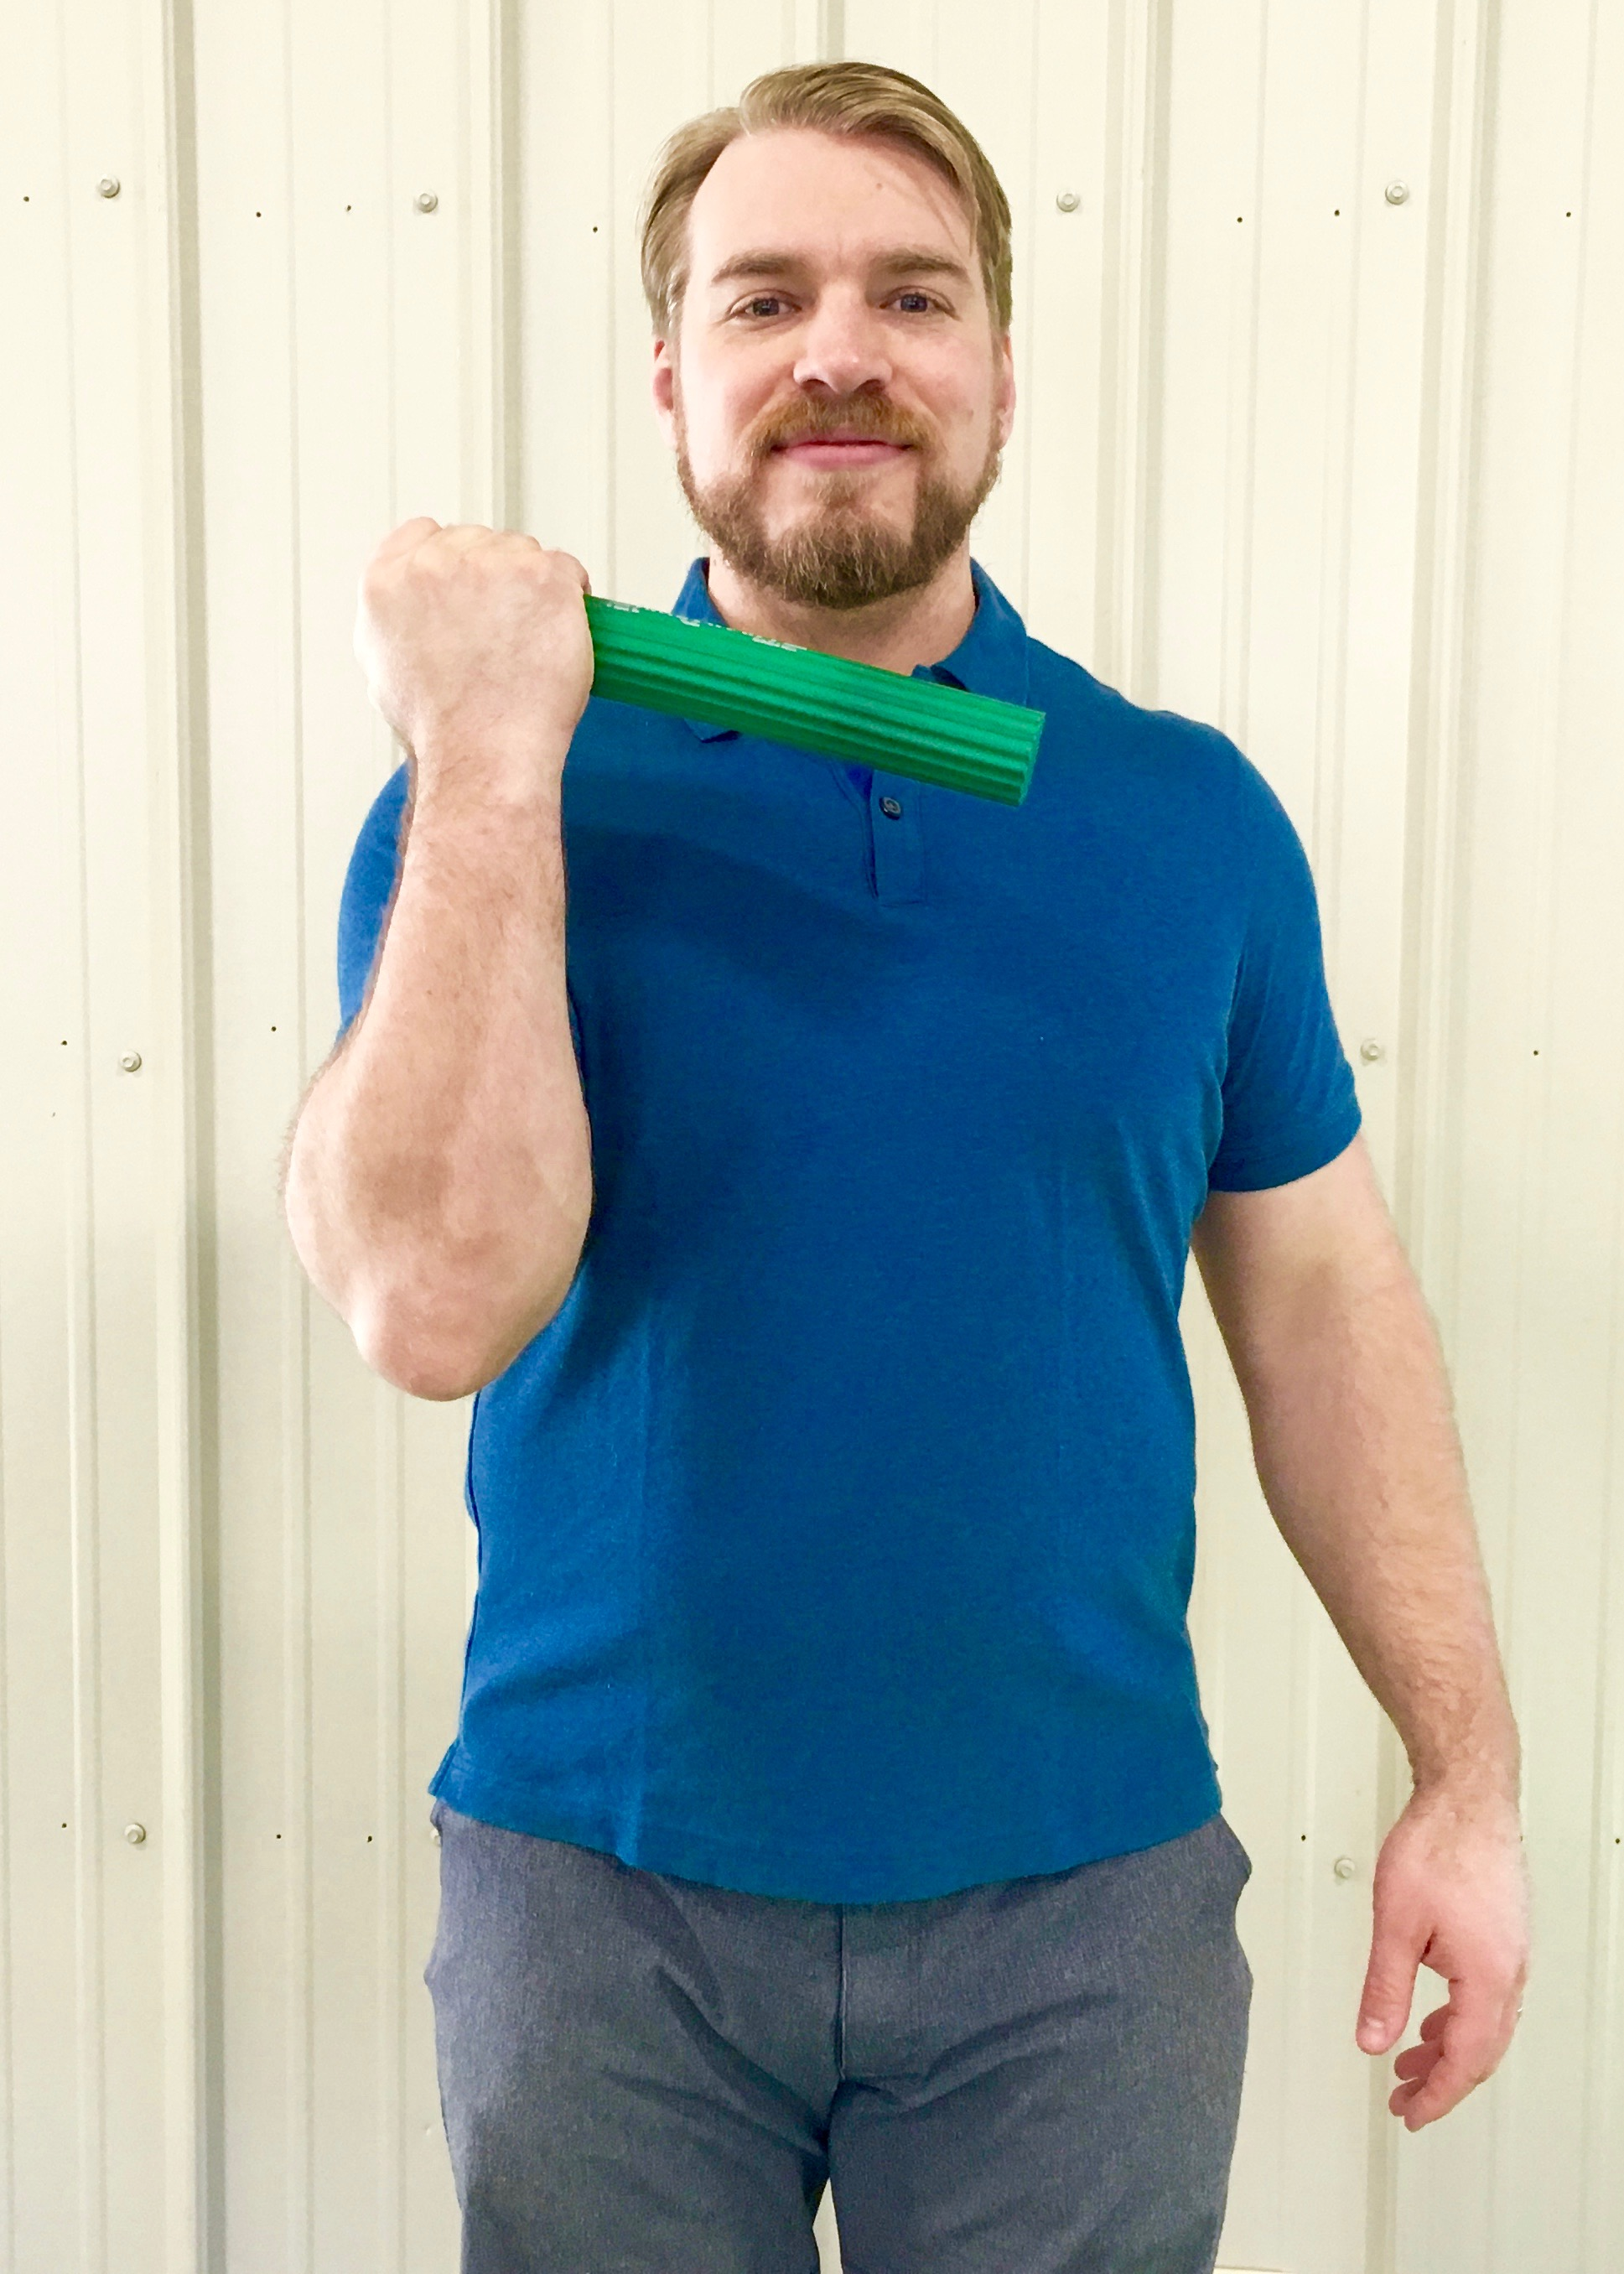 Golfer's Elbow 1 - Hold bar with injured arm.